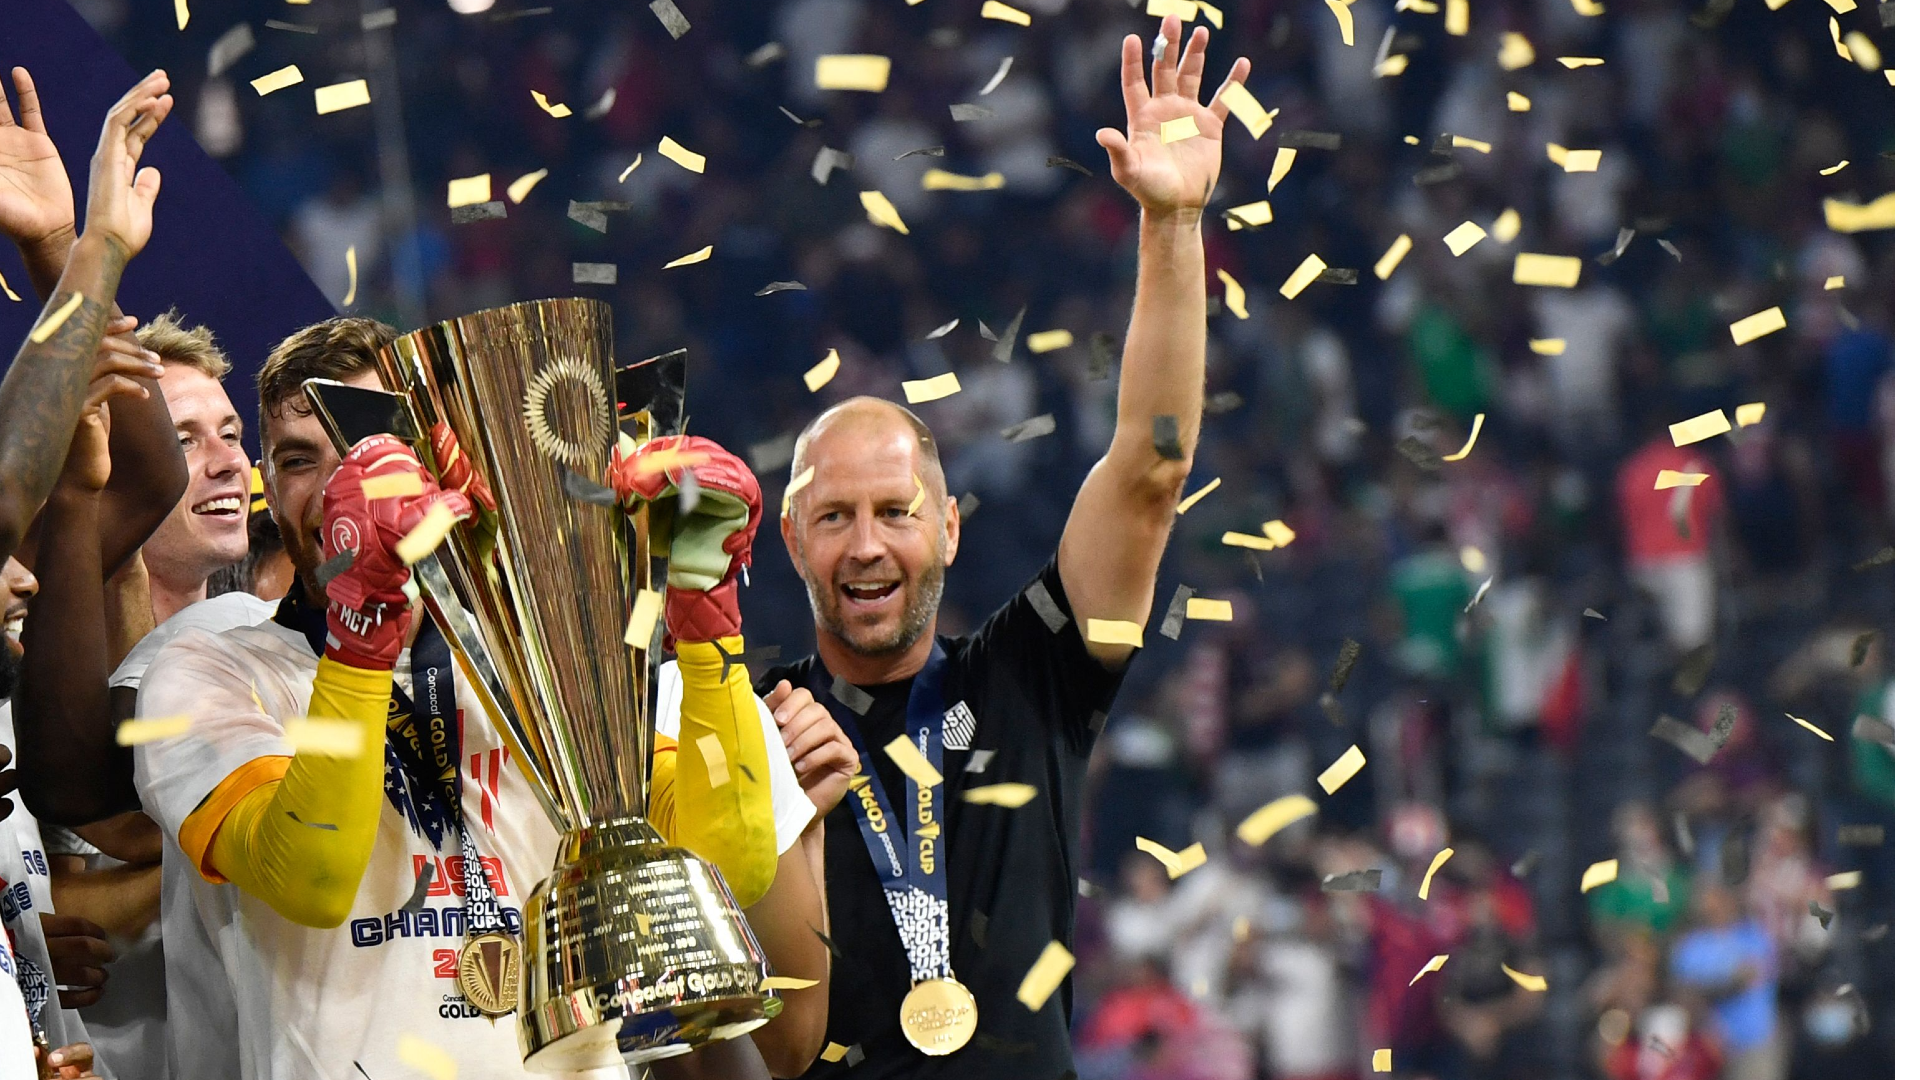 'I just wanted it so bad for them' - Berhalter hails 'relentless' USMNT after incredible win over Mexico